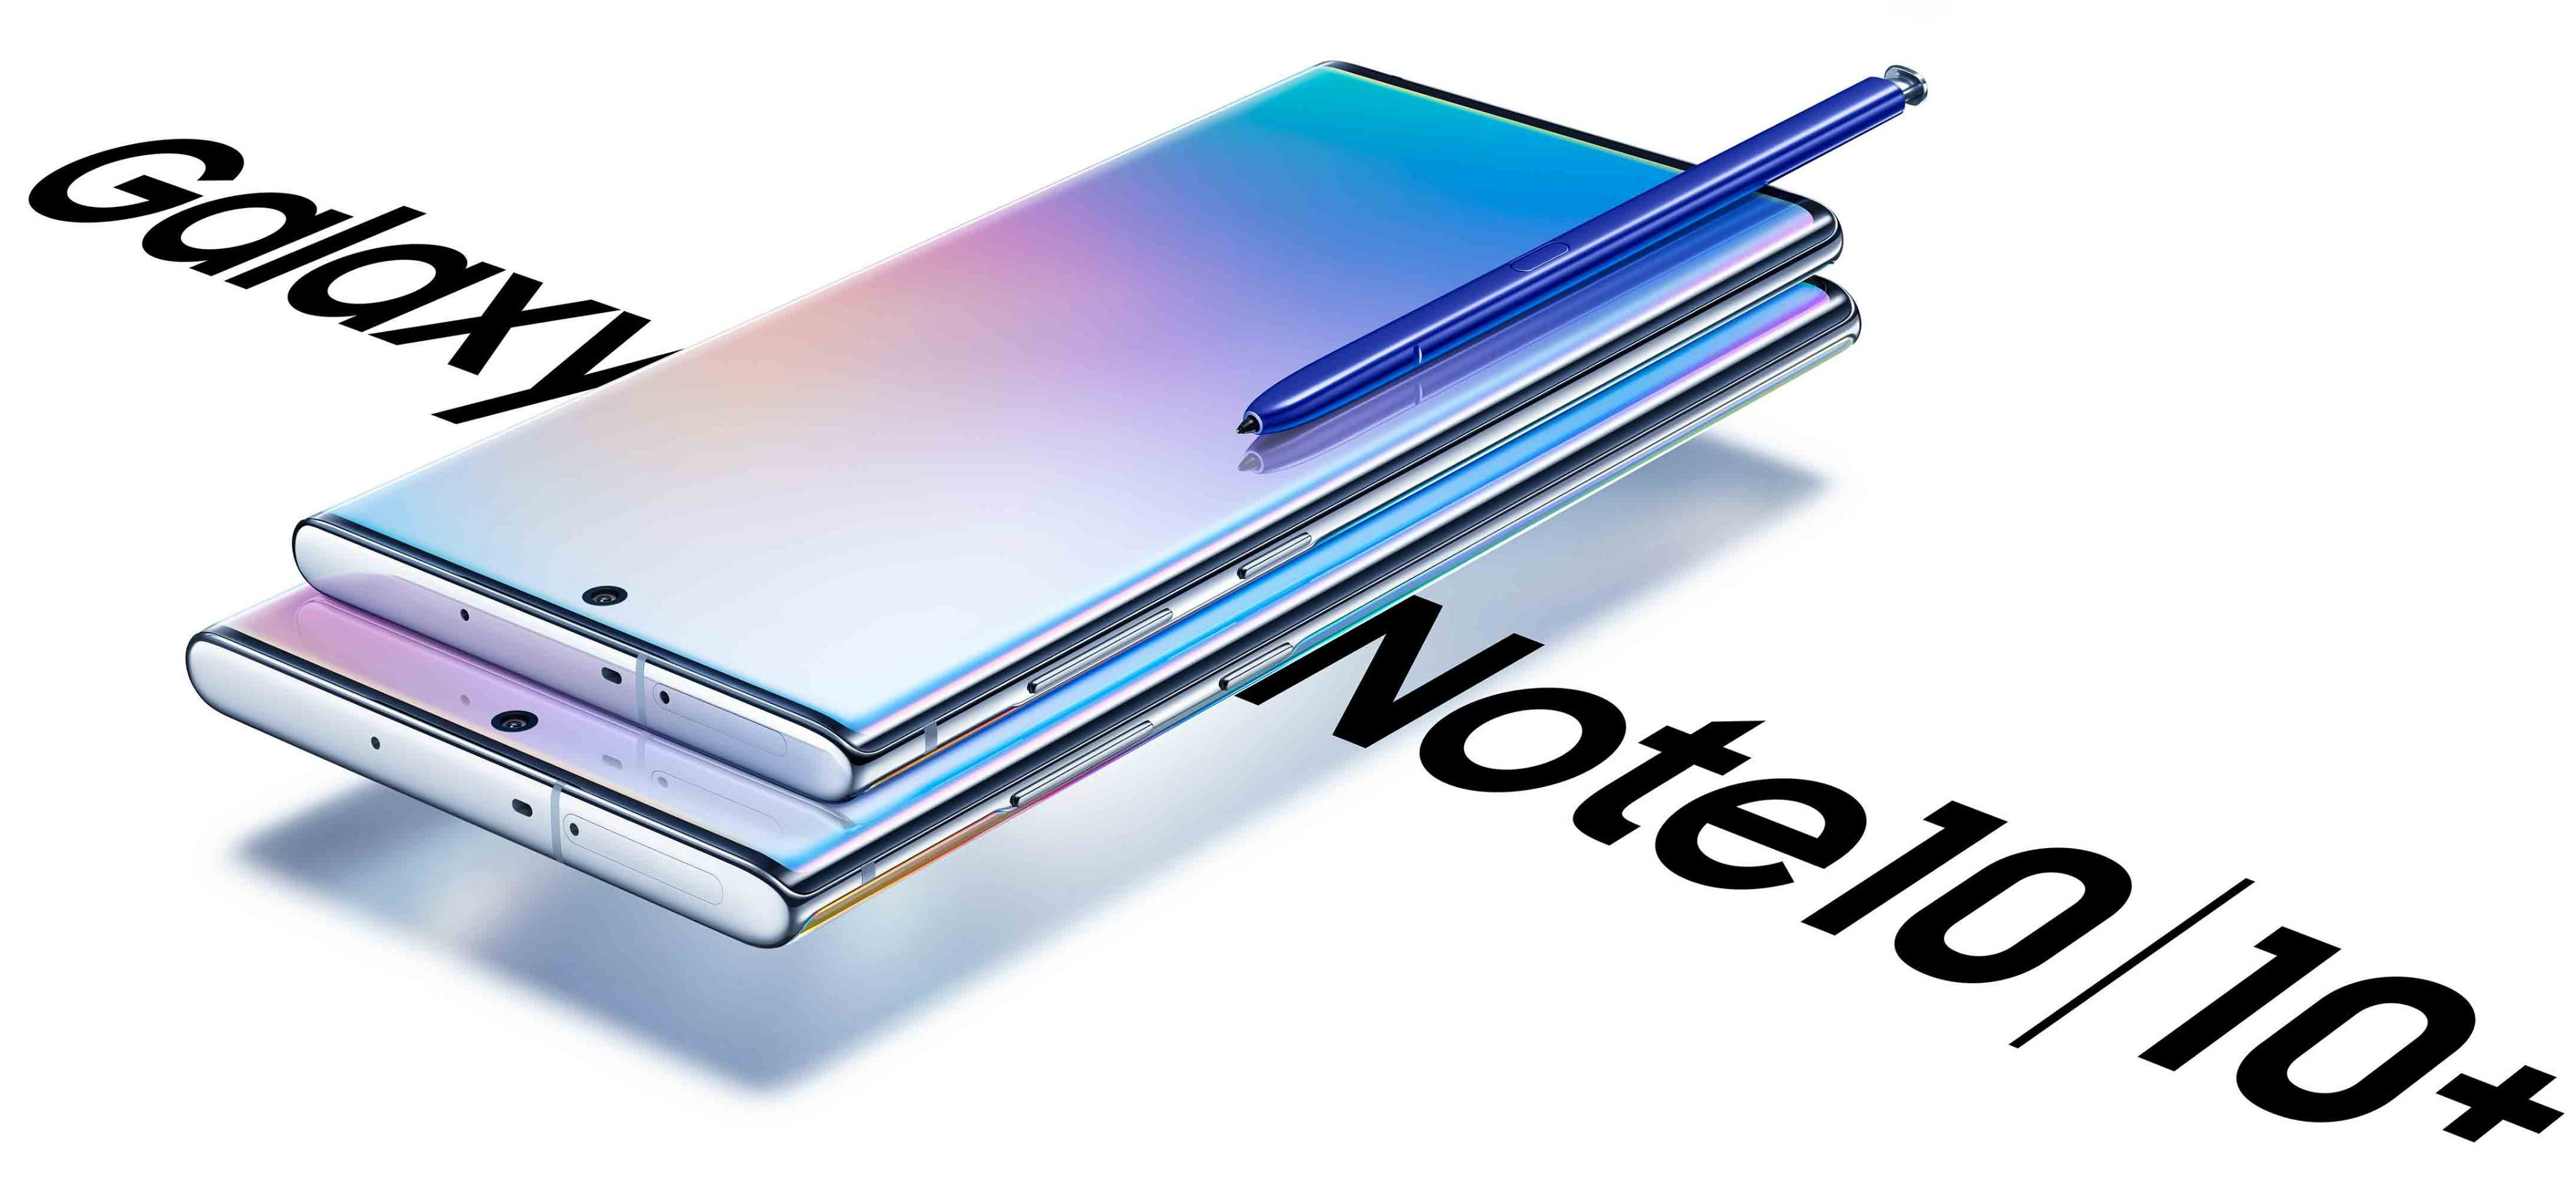 samsung-galaxy-note10-10plus Samsung Galaxy UNPACKED 2019 - ab 22:00 Uhr geht es los [Livestream] Events Google Android Hardware Samsung Smartphones Technology